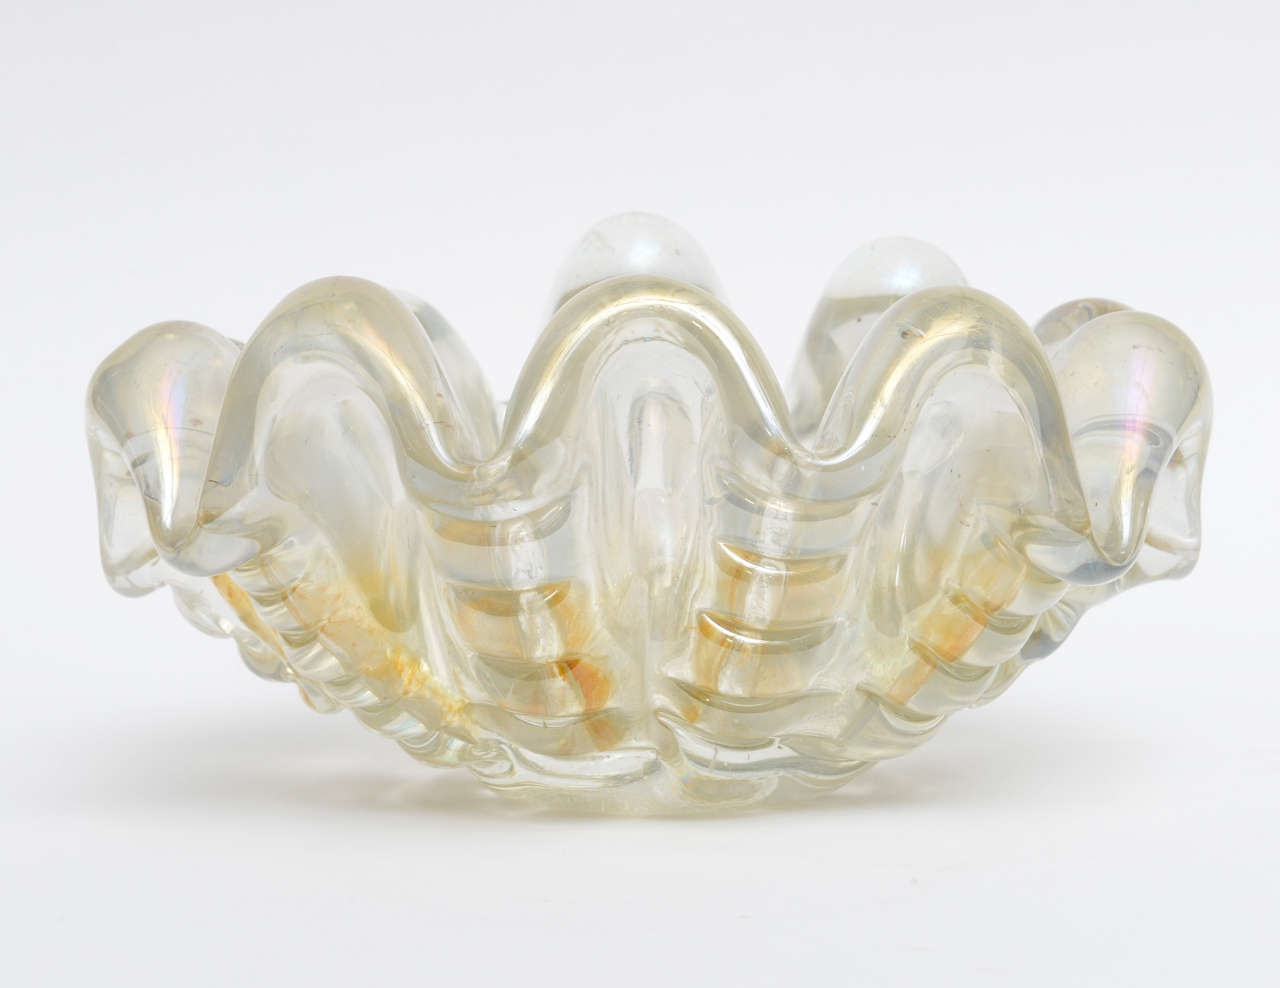 Barovier e Toso large, thick clam-shell shaped, lobed Murano center bowl.